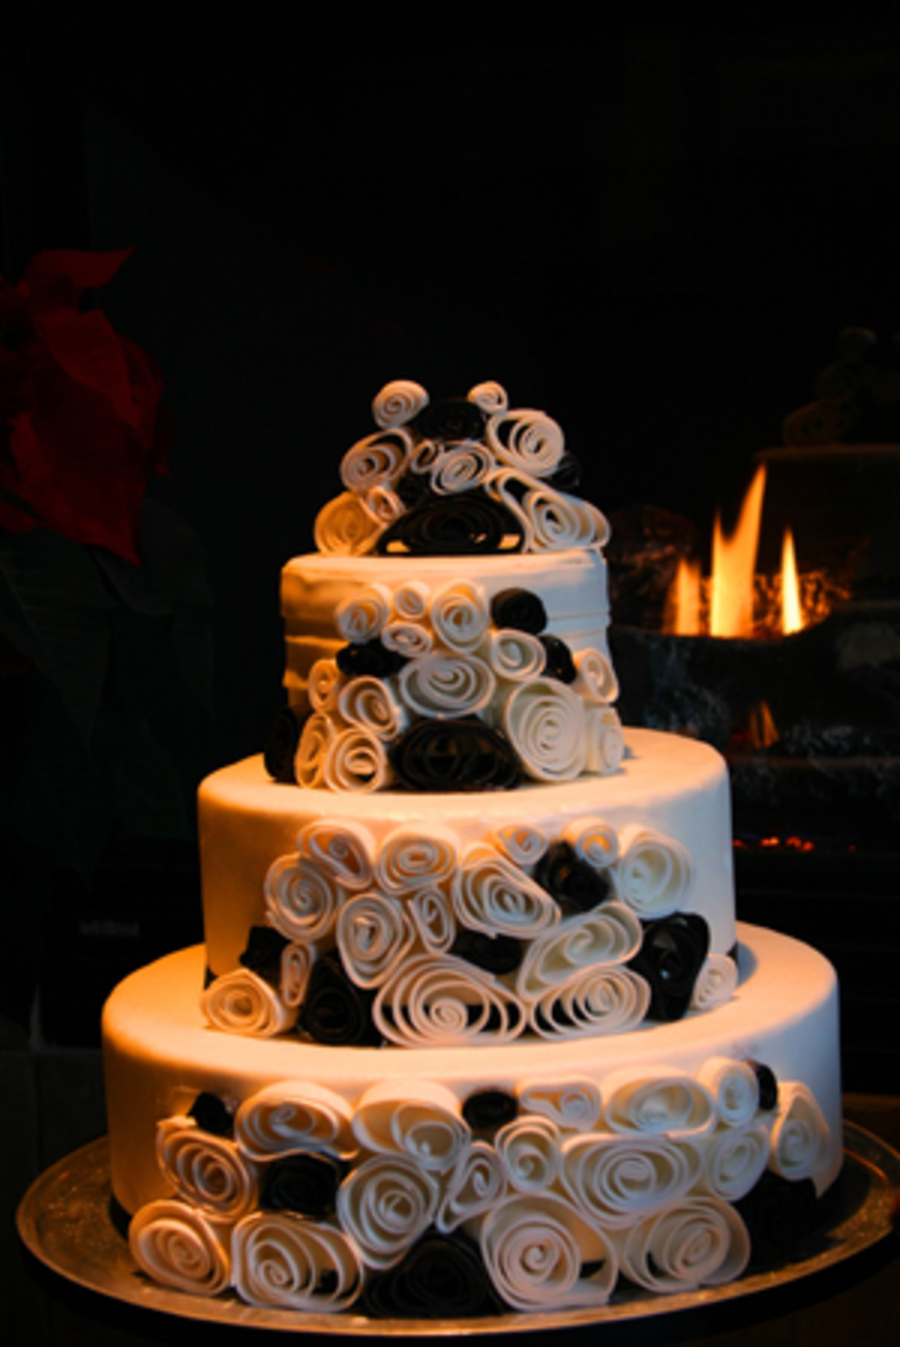 Black Tie Event - By Connie Antin on Cake Central